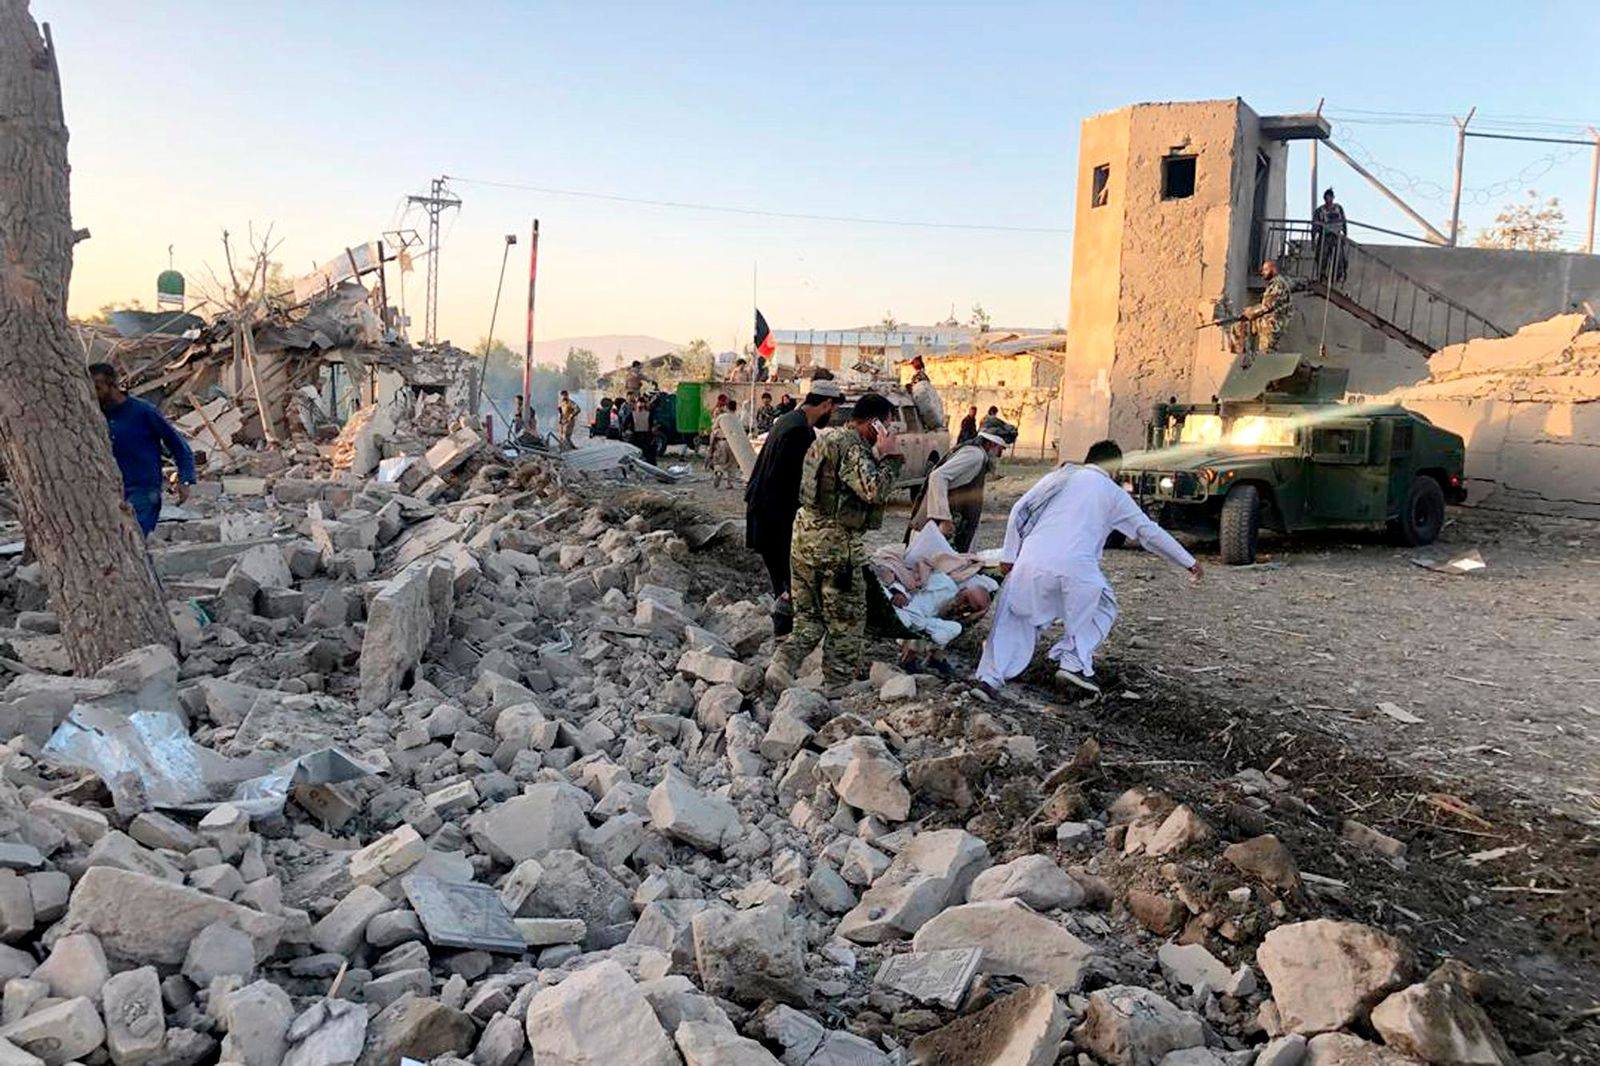 Afghan security members and people work at the site of a suicide attack in Zabul, Afghanistan, Thursday, Sept. 19, 2019.. (AP Photo/Ahmad Wali Sarhadi)